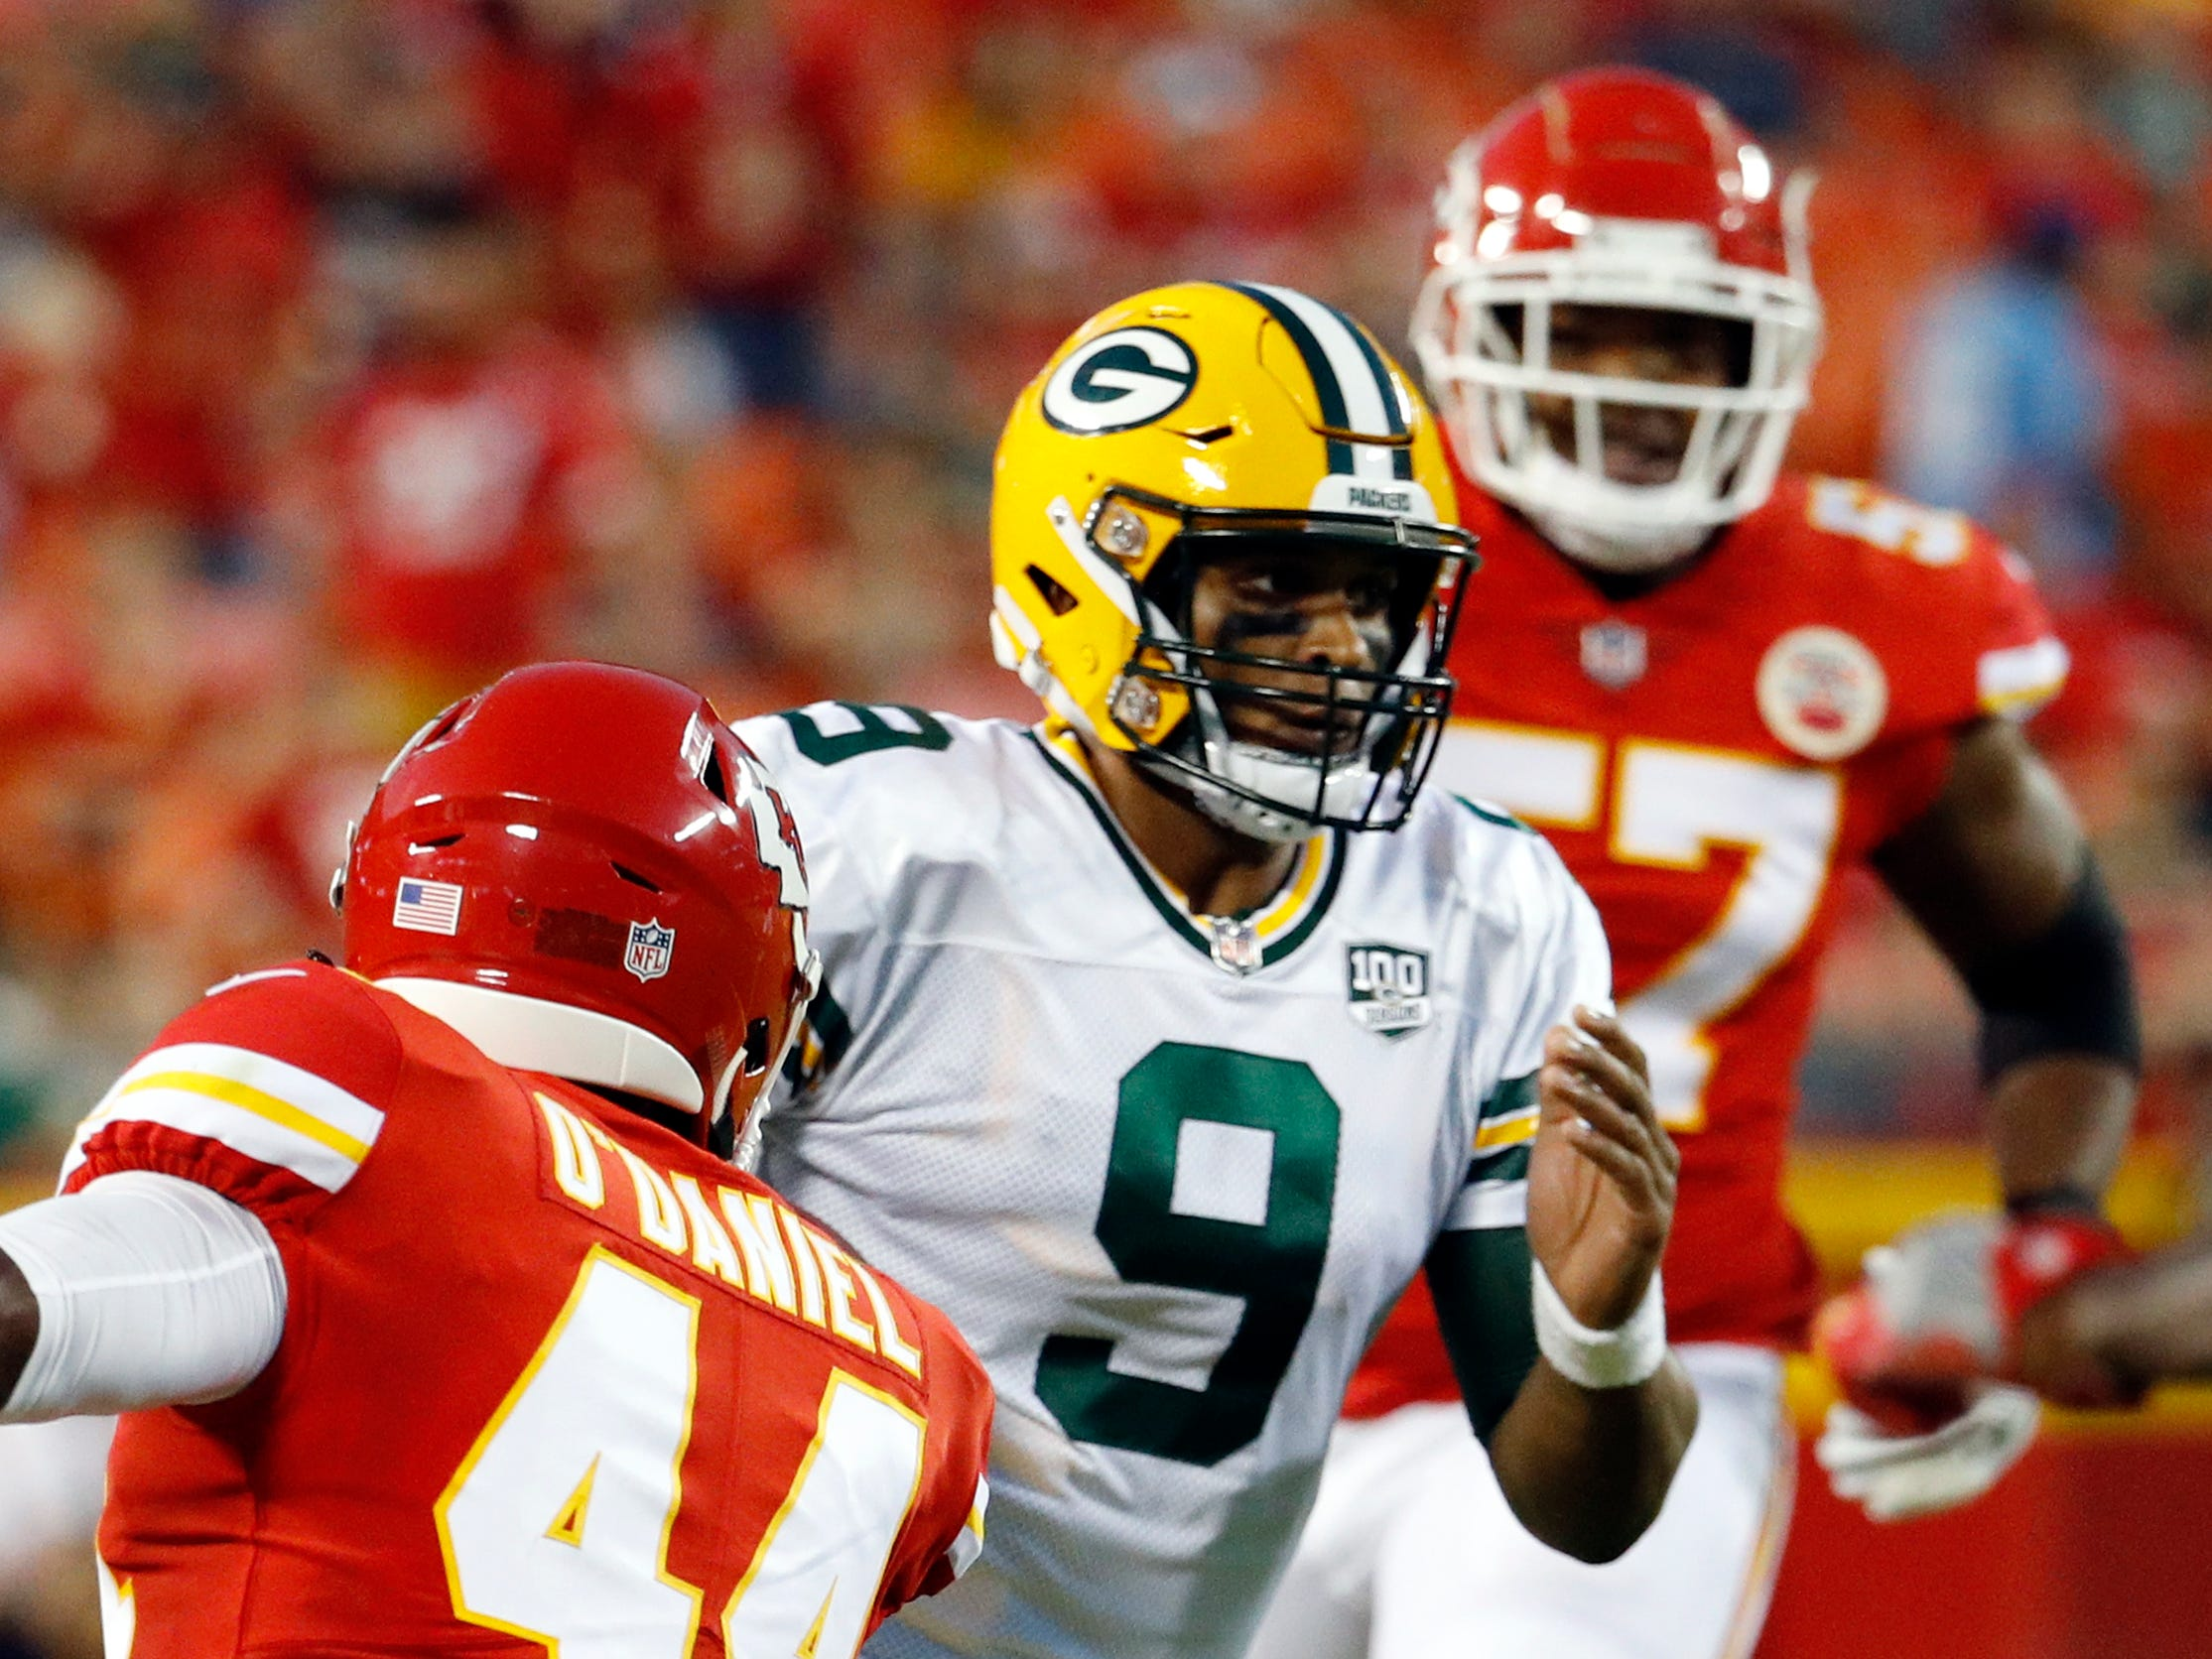 Green Bay Packers quarterback DeShone Kizer (9) runs with the ball between Kansas City Chiefs linebacker Dorian O'Daniel (44) and linebacker Breeland Speaks (57) during the first half of an NFL preseason football game in Kansas City, Mo., Thursday, Aug. 30, 2018.